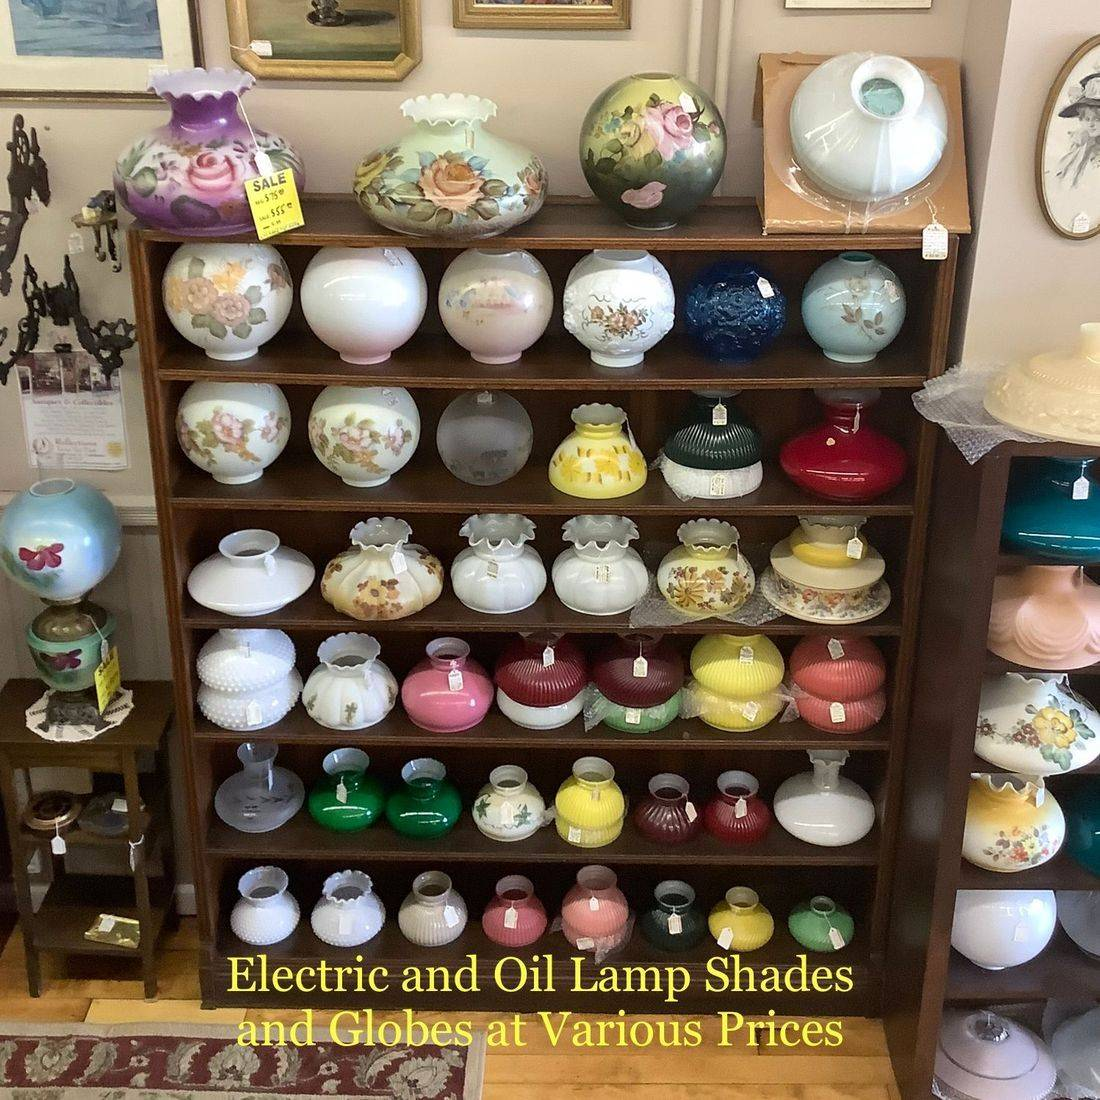 Electric and Oil Lamp Shades & Globes